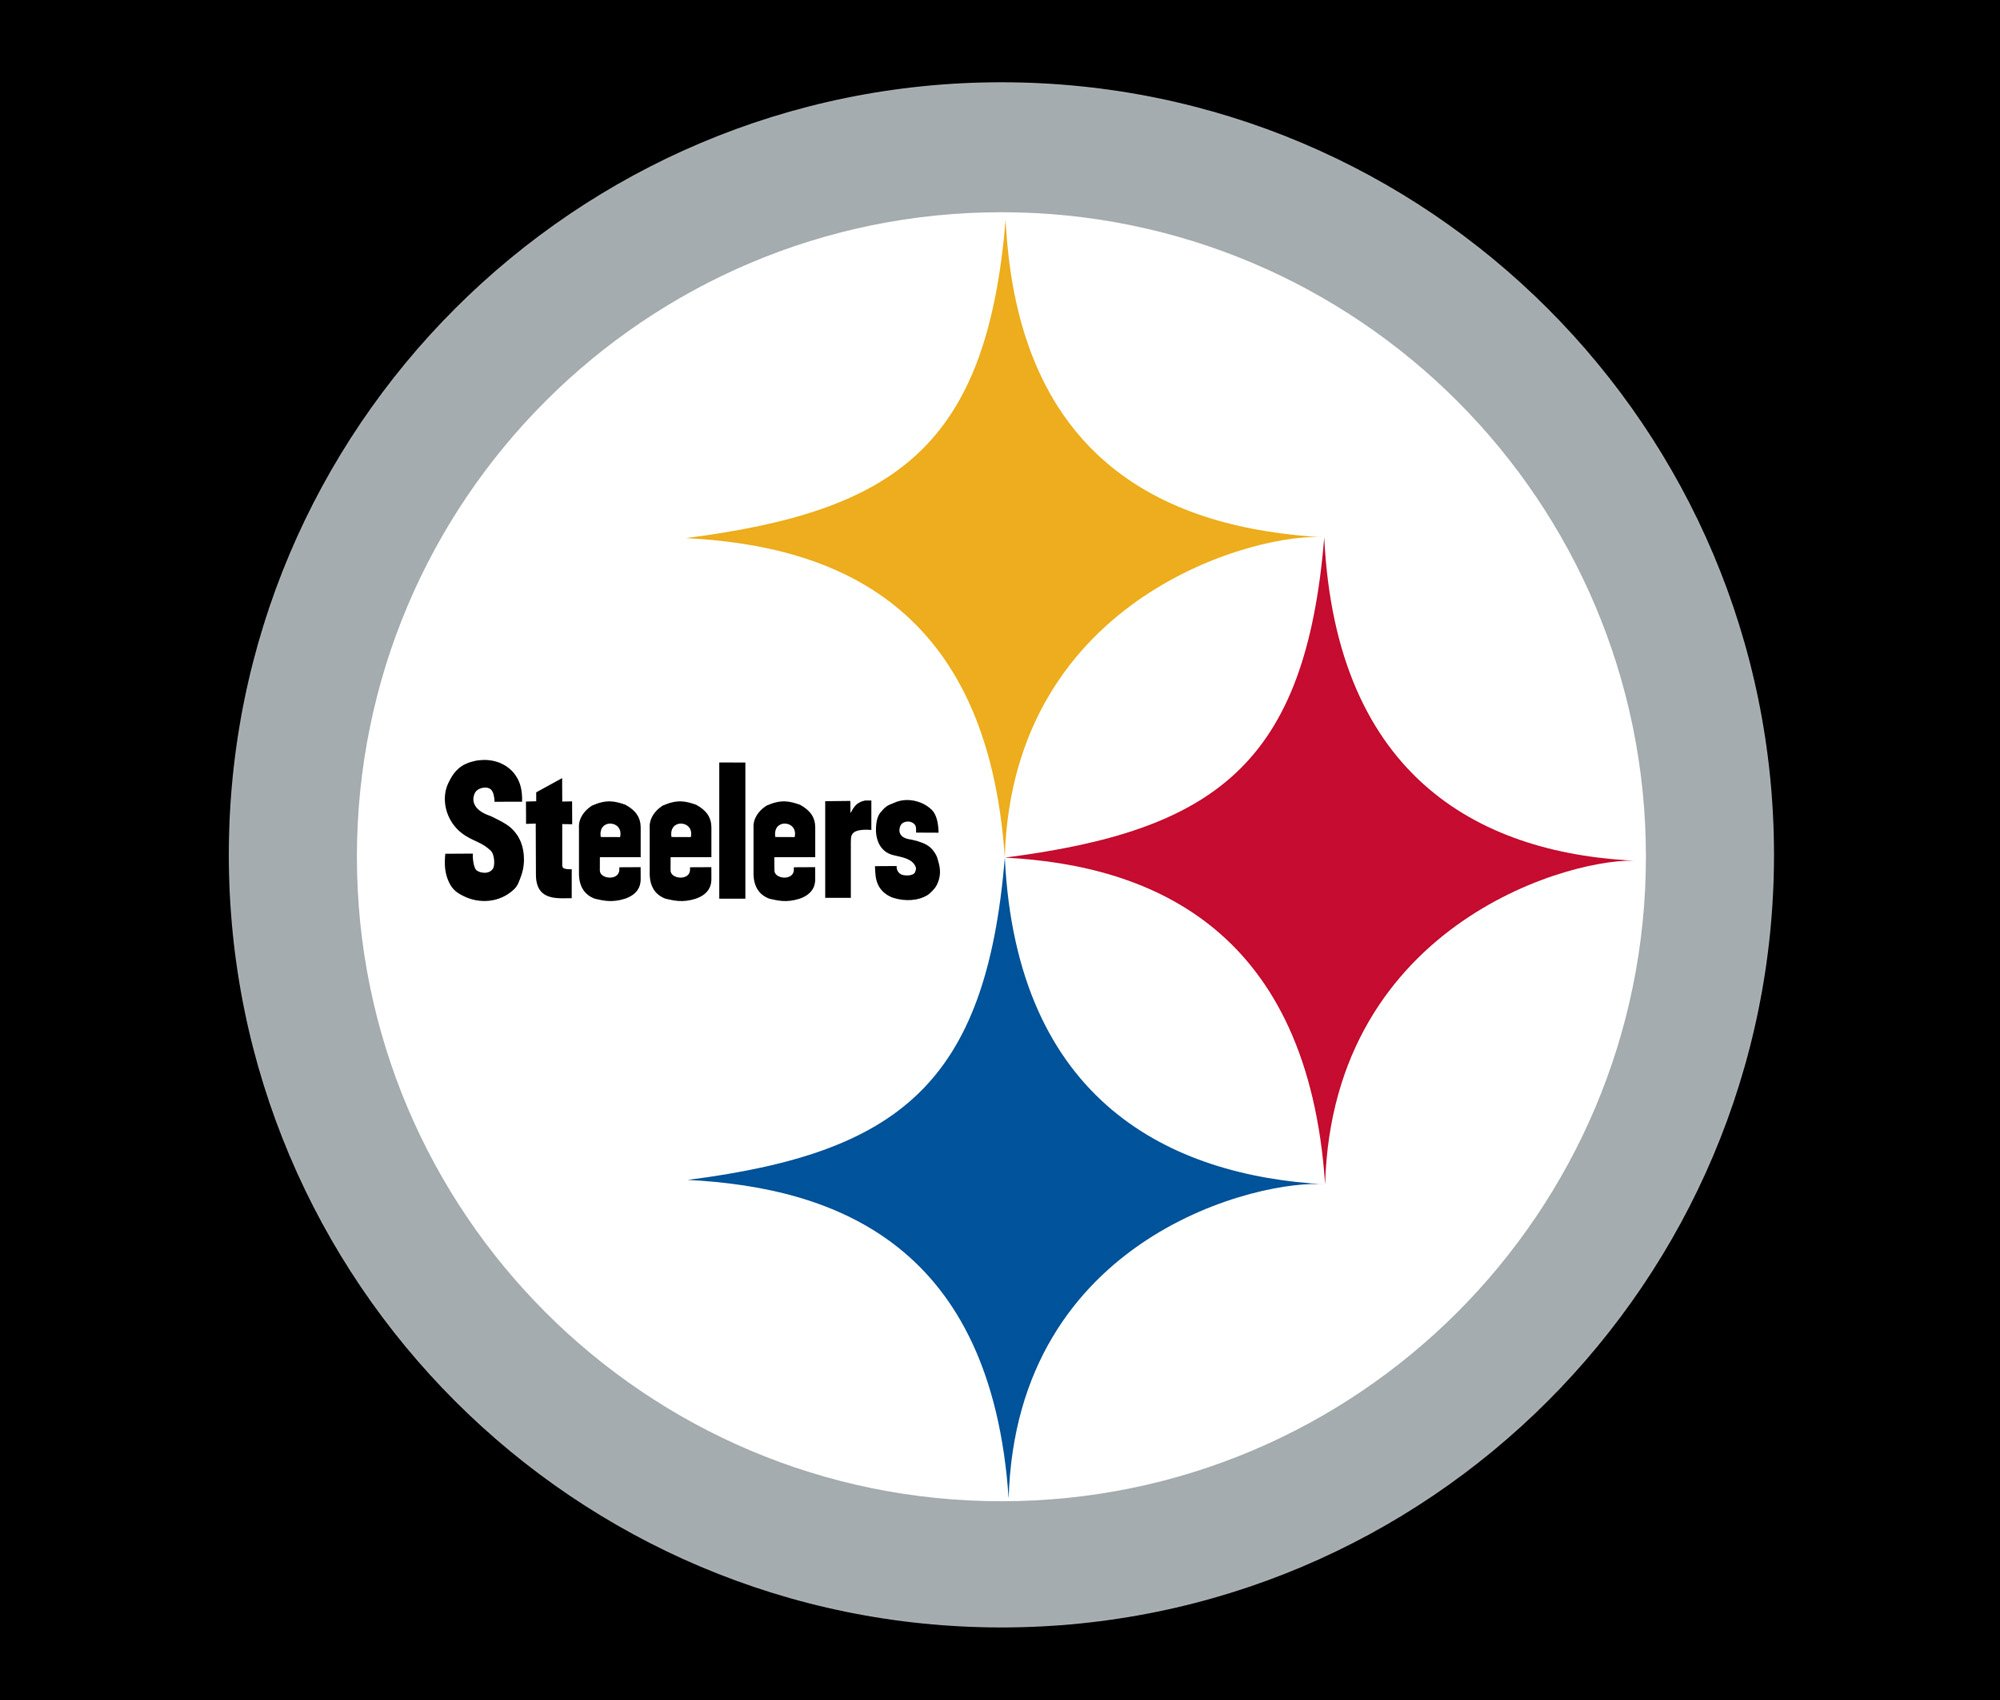 Pittsburgh steelers logo steelers symbol meaning history and steelers symbol biocorpaavc Images